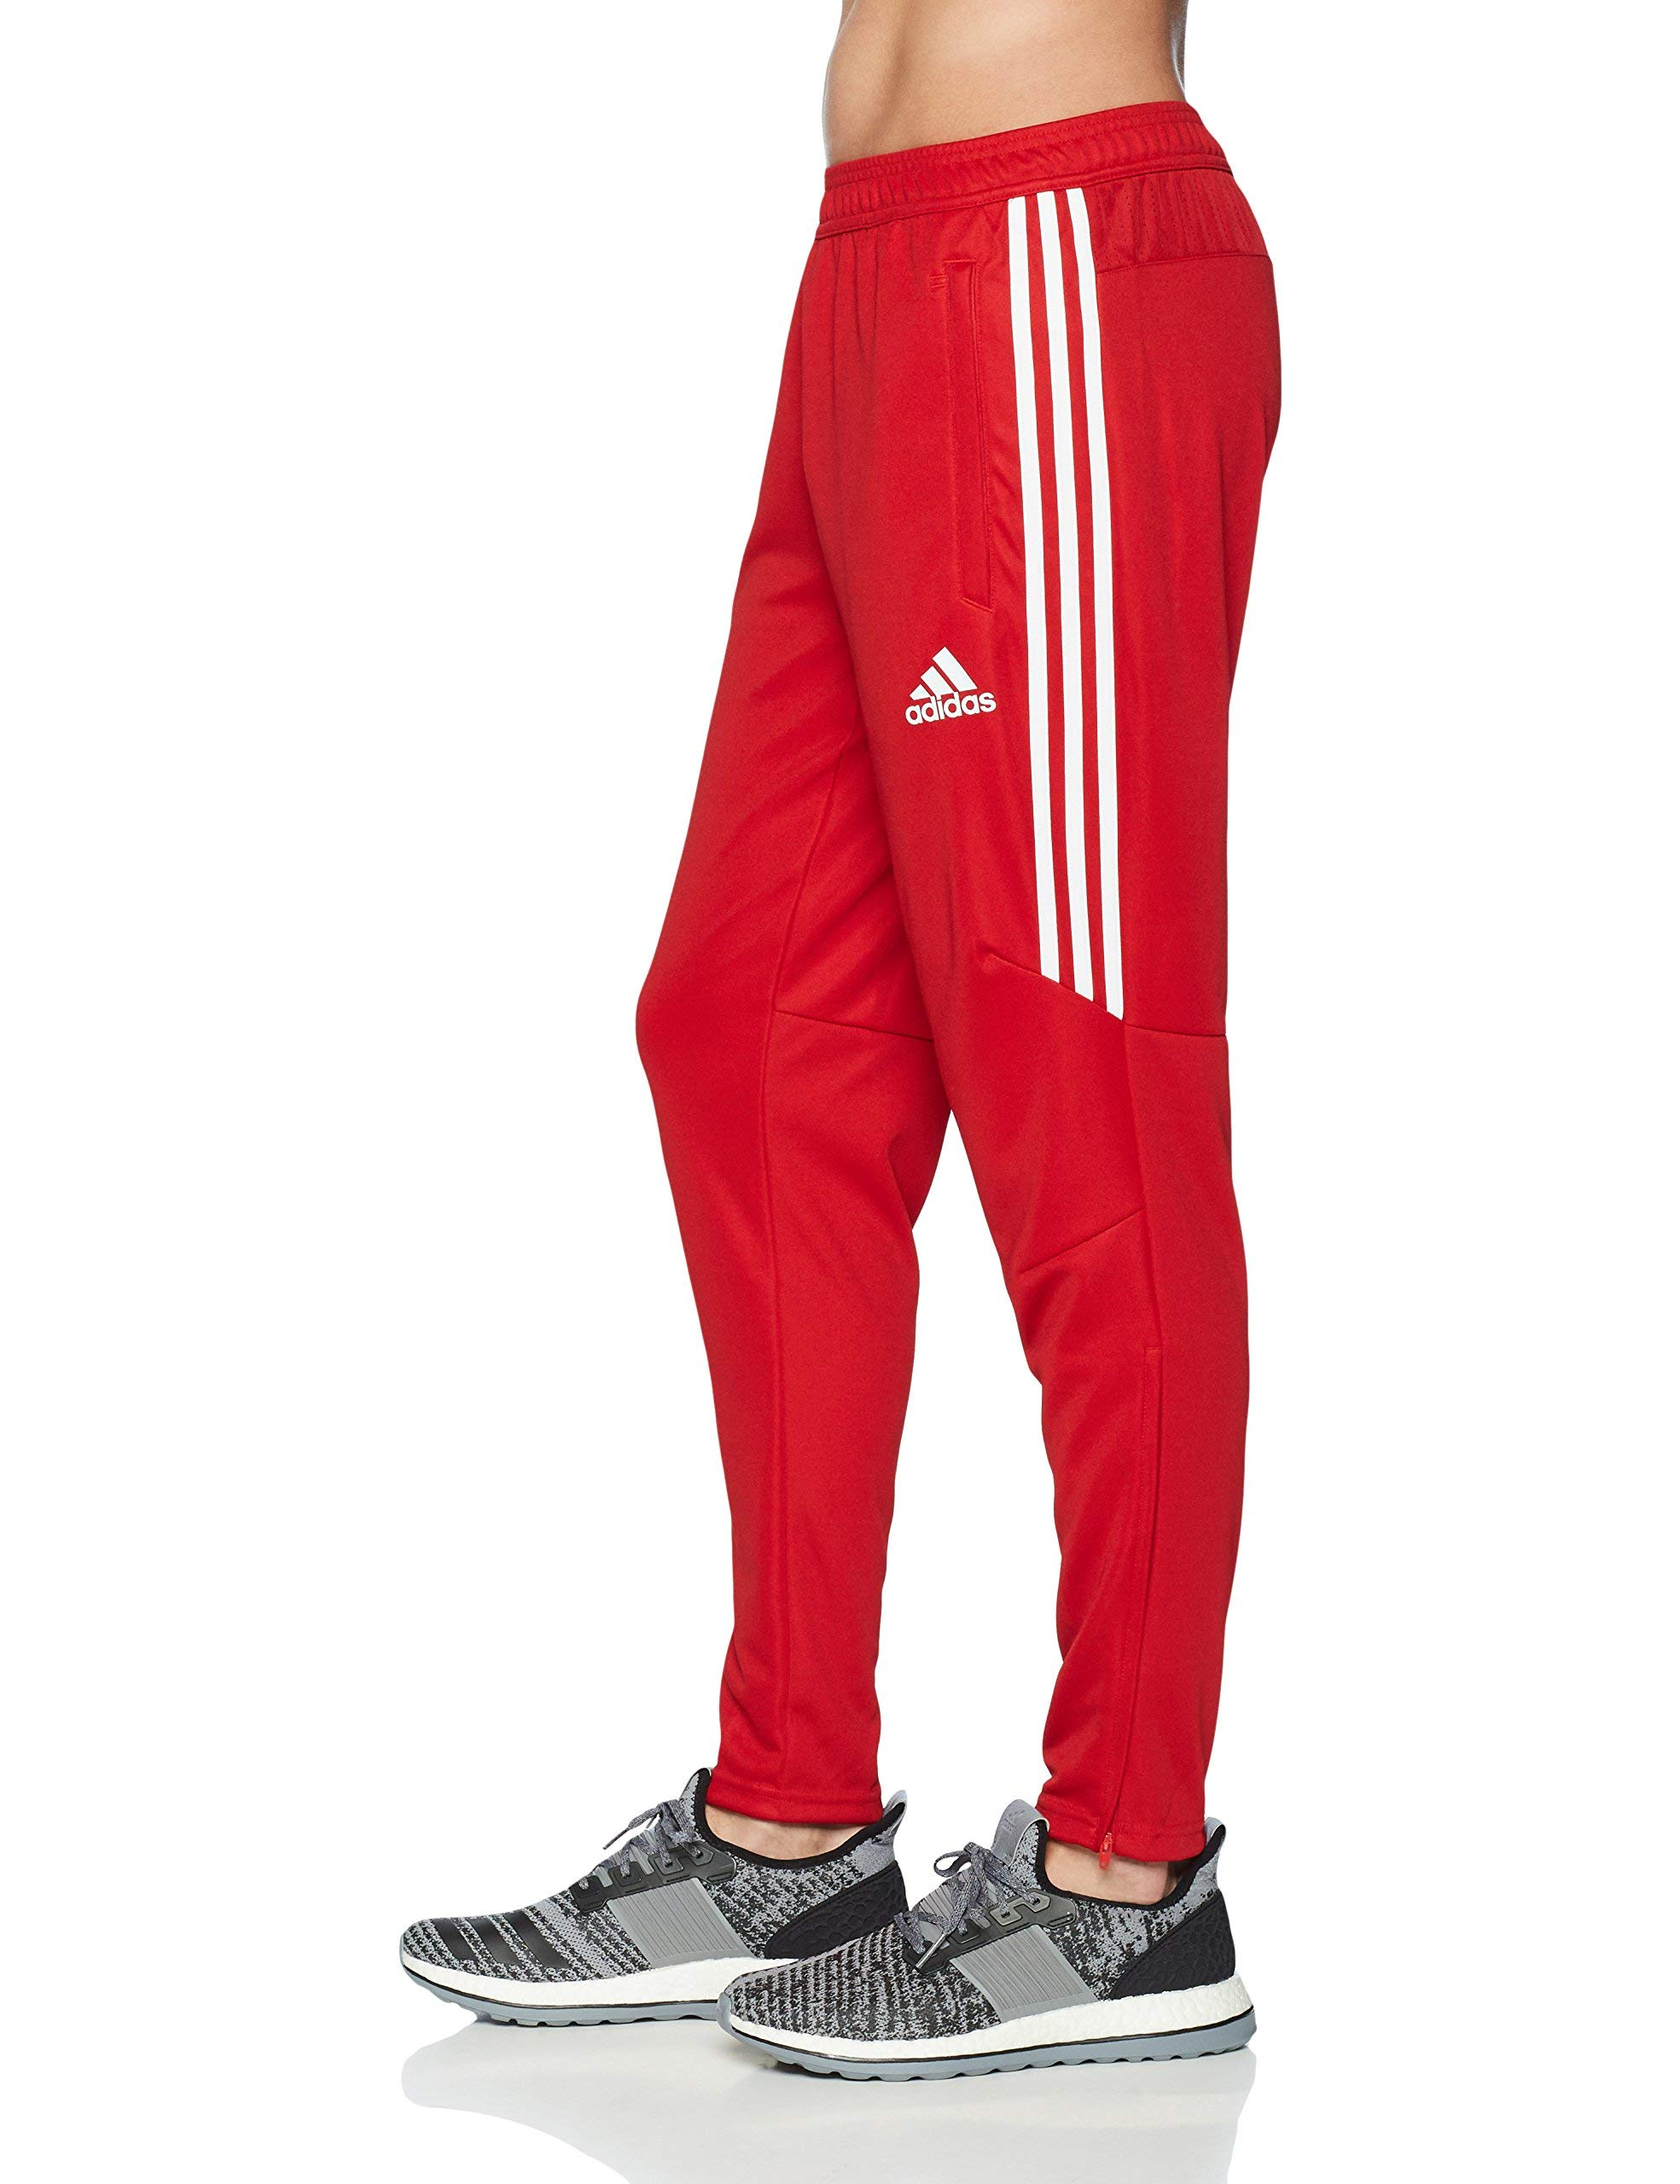 adidas Men's Soccer Tiro 17 Pants, Small, Power Red/White by adidas (Image #3)